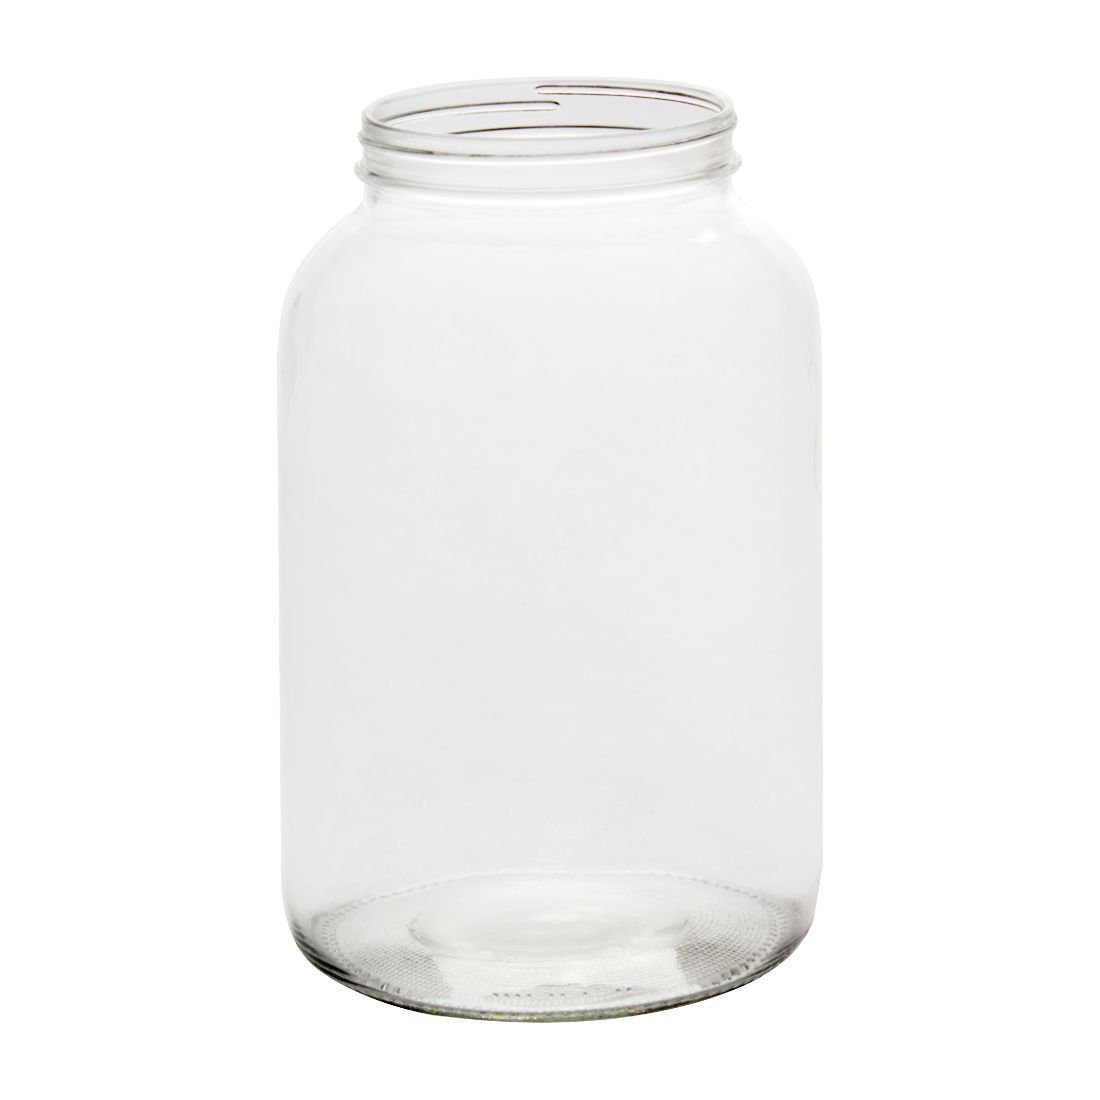 North Mountain Supply 1 Gallon Glass Wide-Mouth 110 CT Fermentation/Canning Jar with Gold Metal Lids - Case of 4